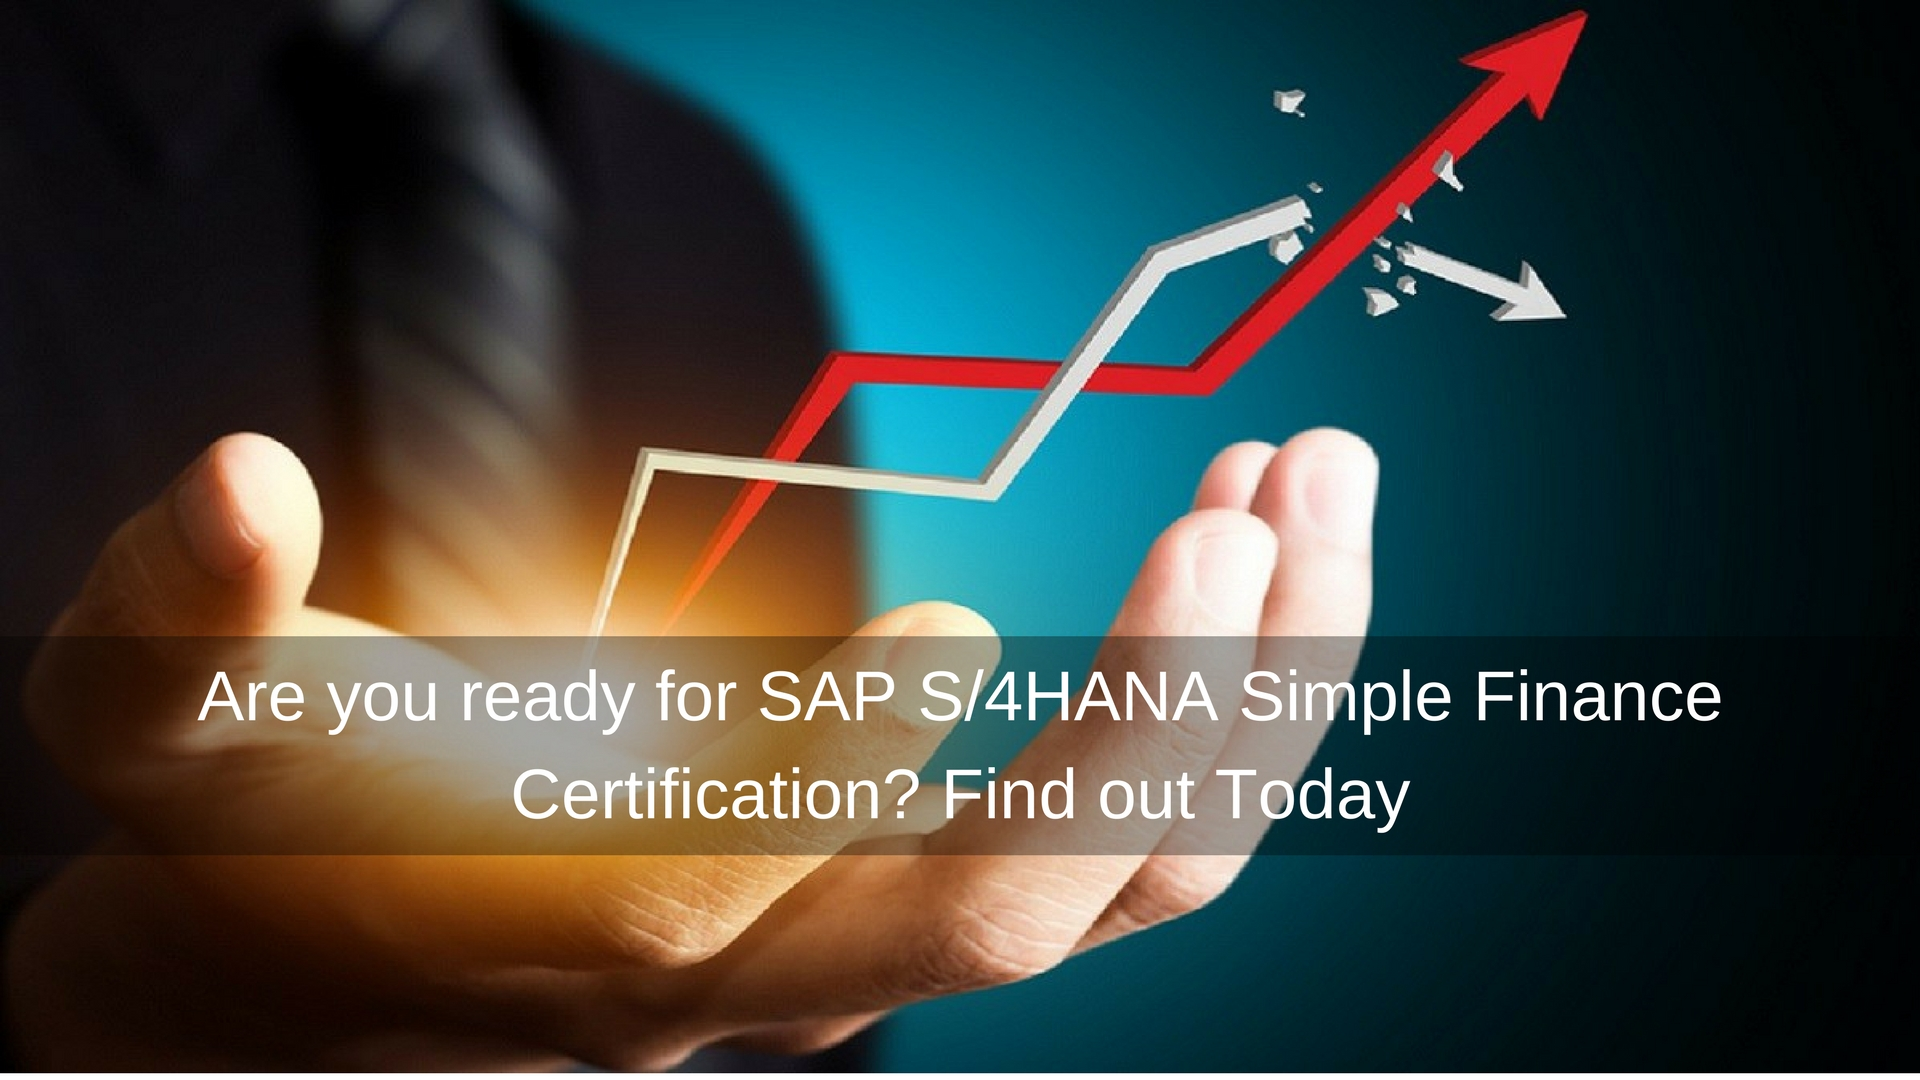 Are you ready for SAP S/4HANA Simple Finance Certification